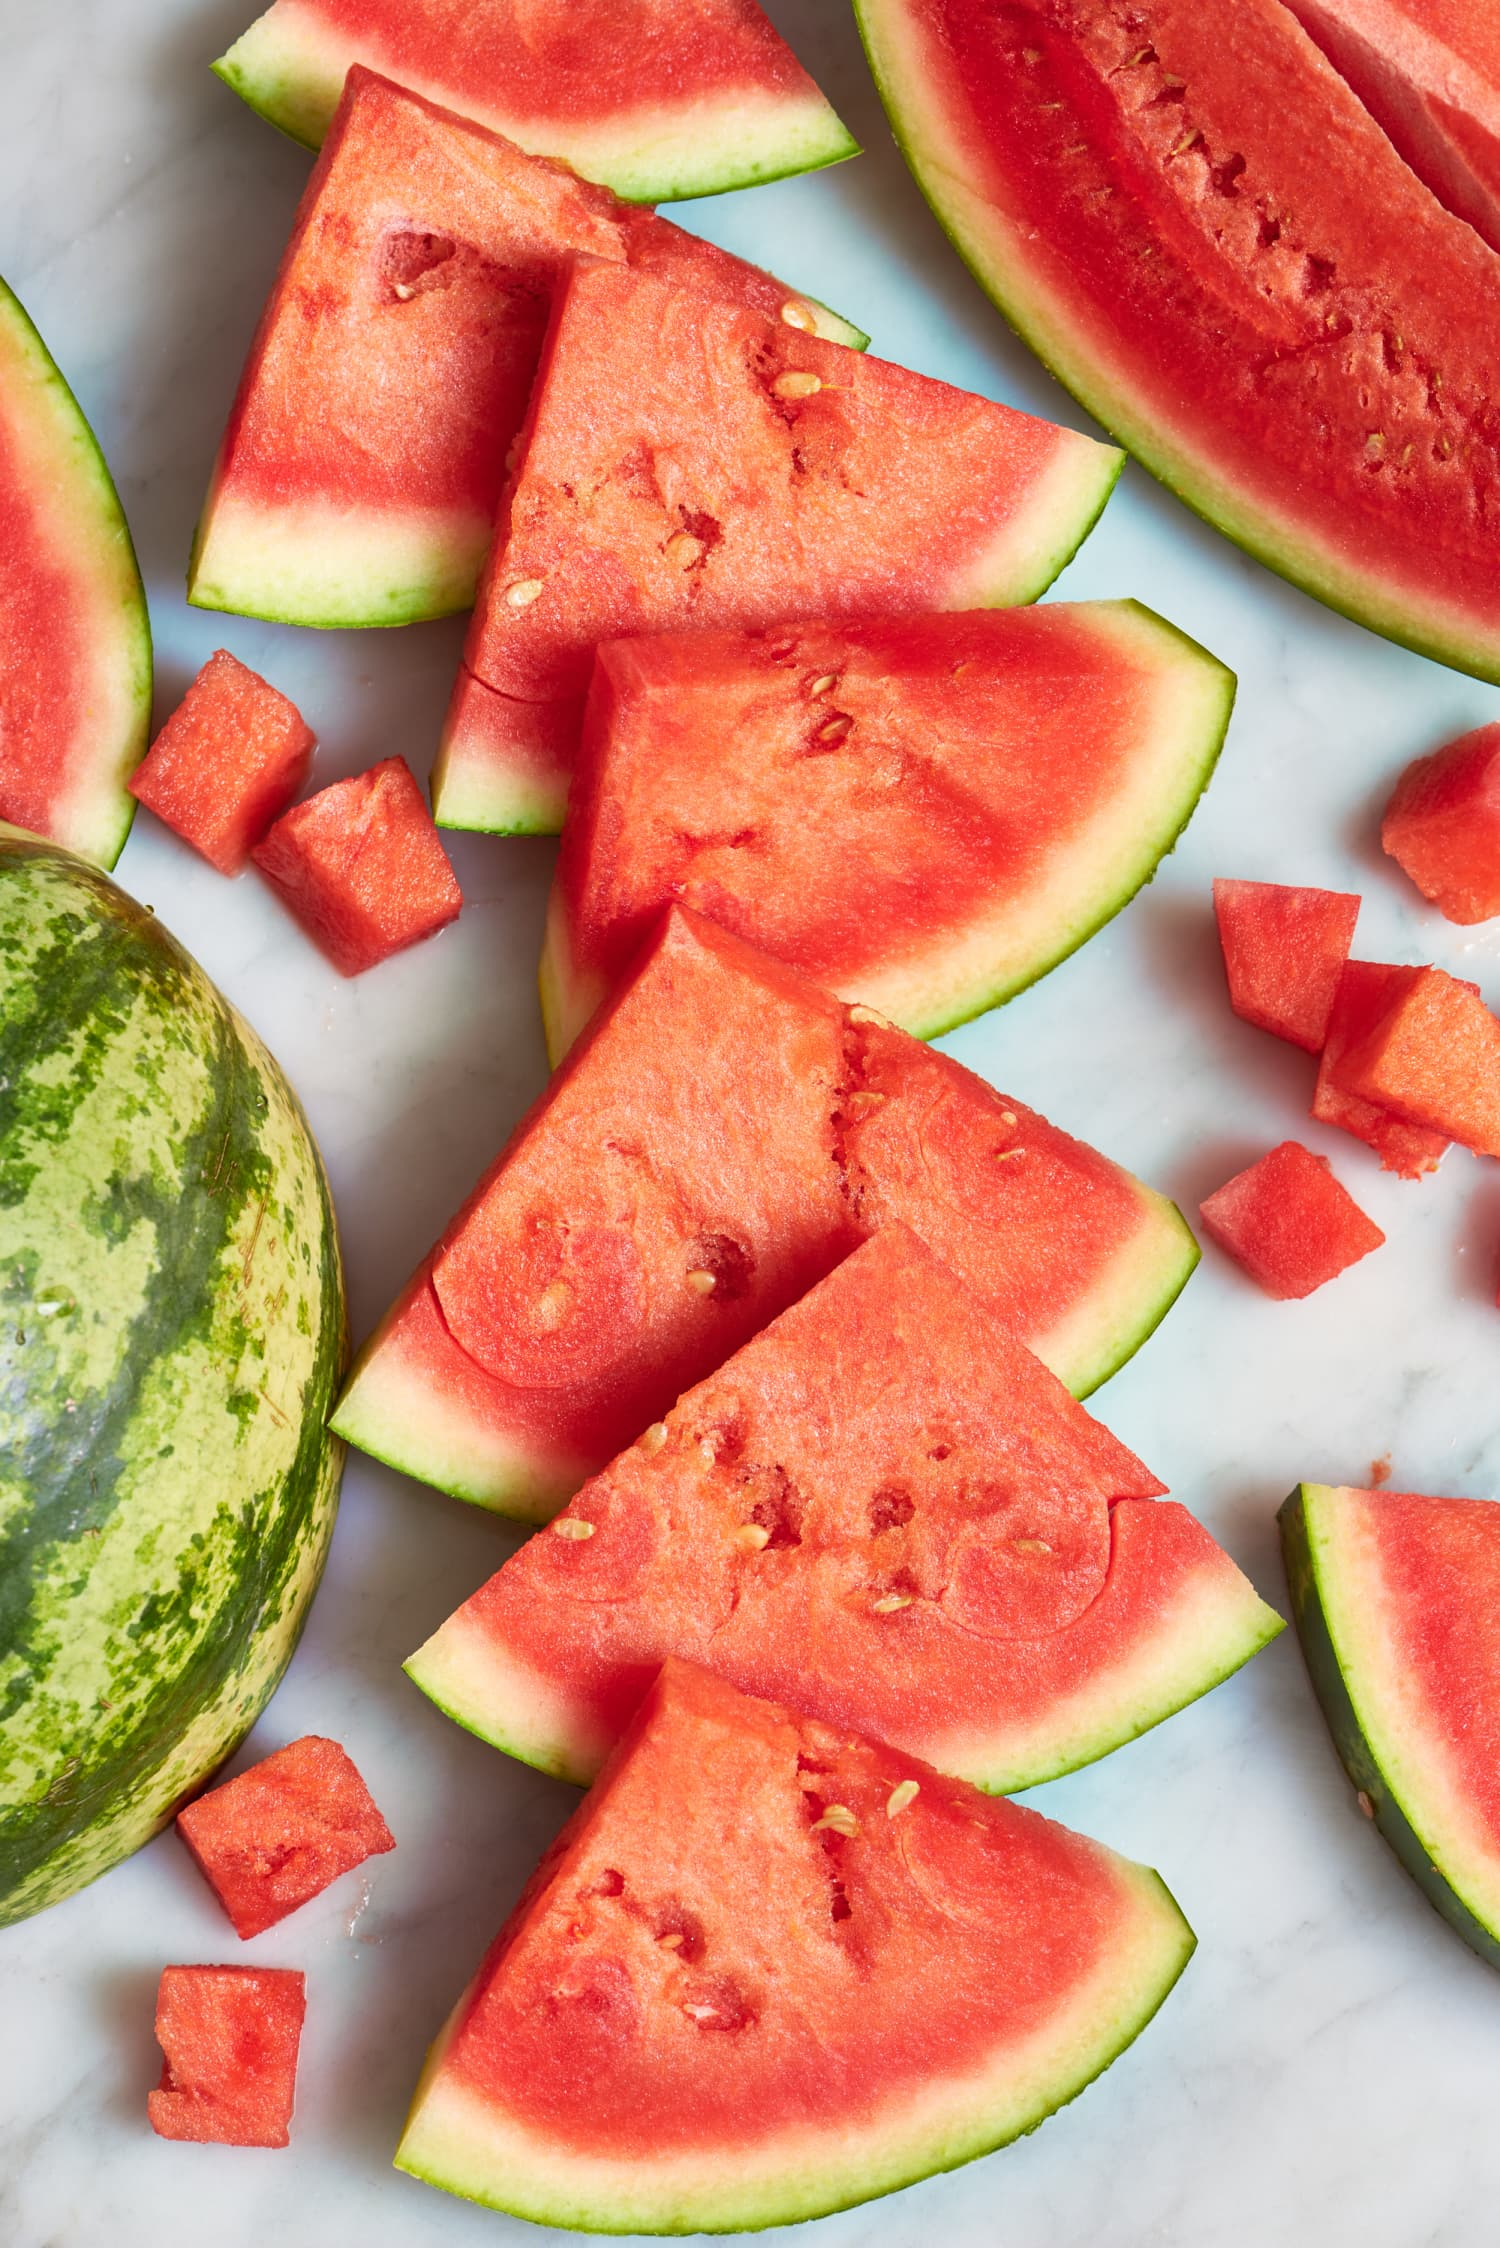 Can You Eat Watermelon on a Ketogenic Diet?